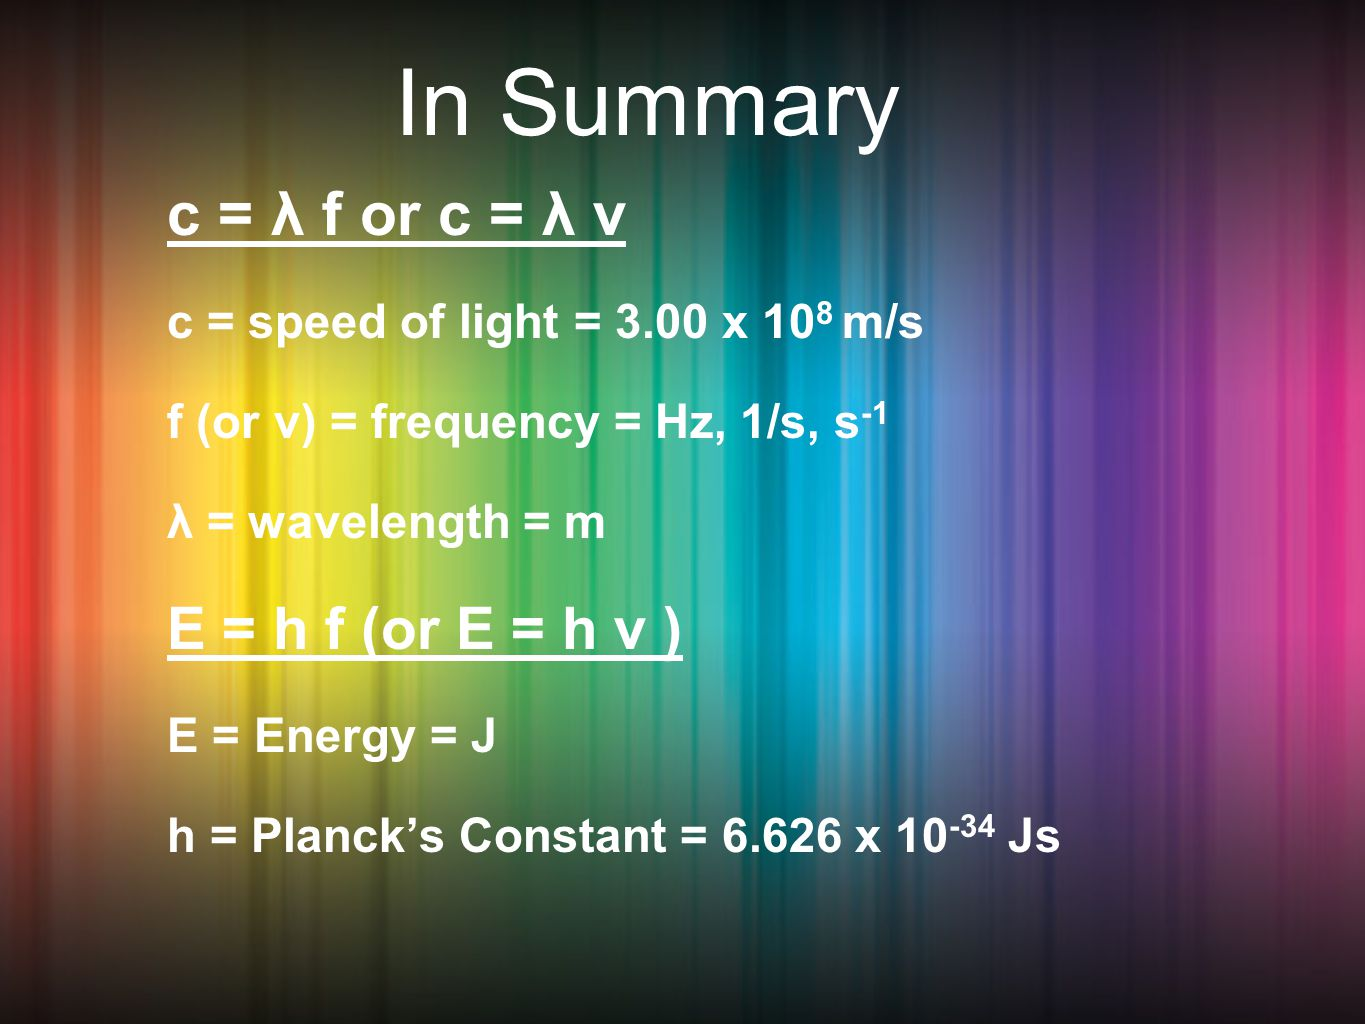 In Summary c = λ f or c = λ v c = speed of light = 3.00 x 10 8 m/s f (or v) = frequency = Hz, 1/s, s -1 λ = wavelength = m E = h f (or E = h ν ) E = Energy = J h = Planck's Constant = x Js